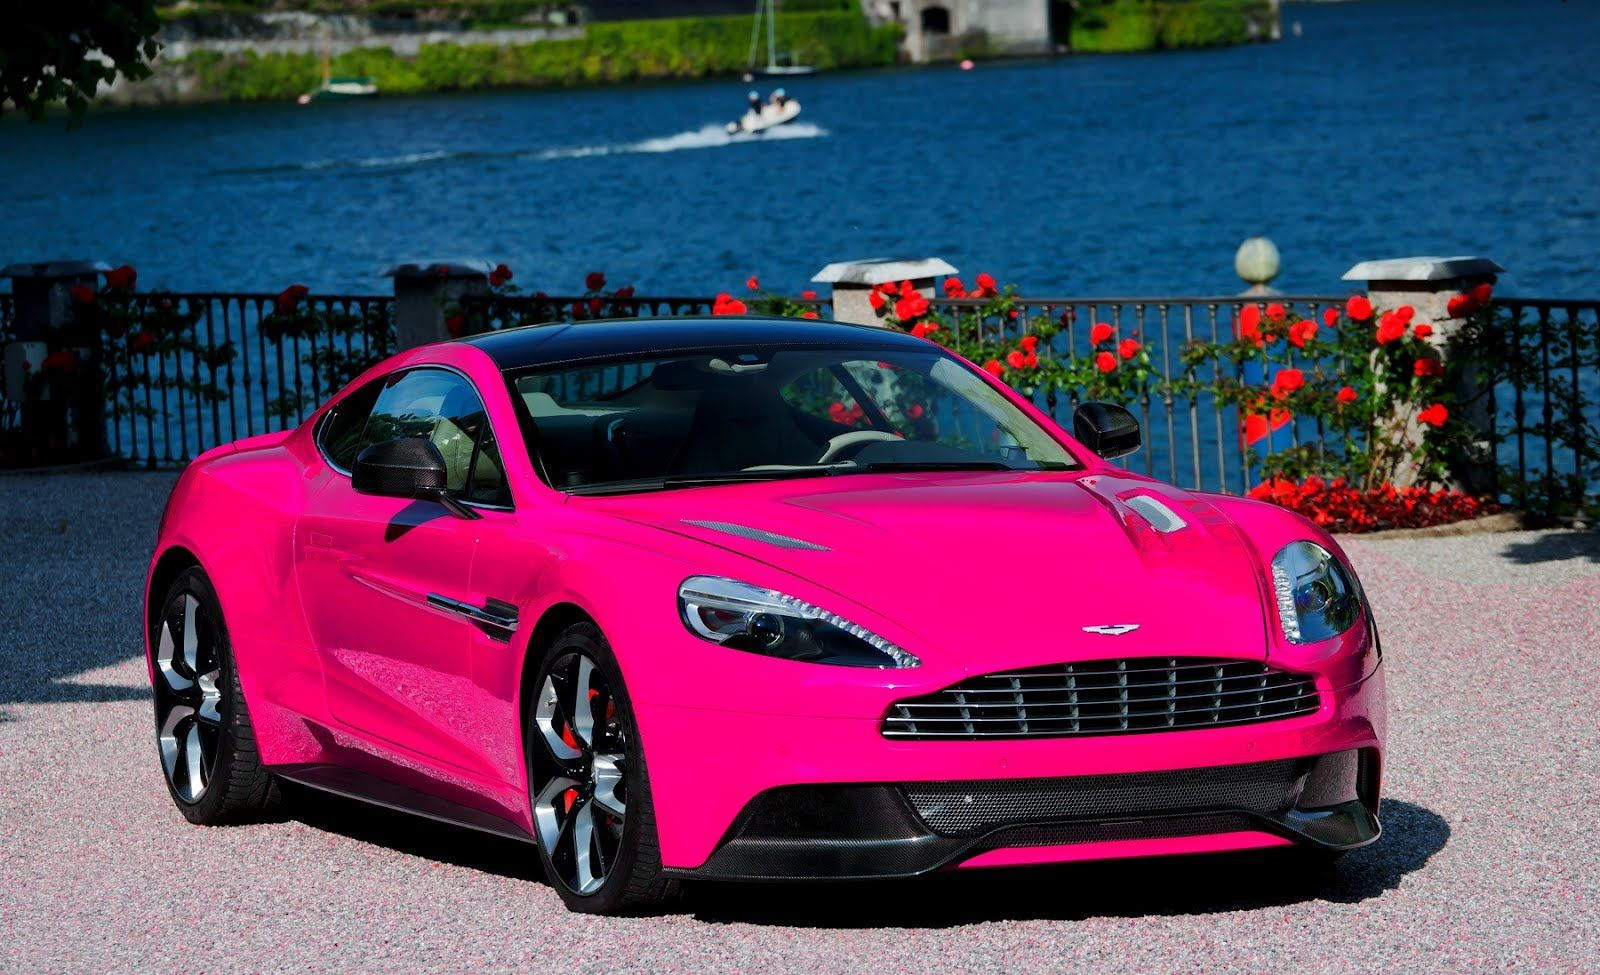 Great 中華車庫   CHINA GARAGE: We Just Love Cars!: Pink Aston Martin Vanquish